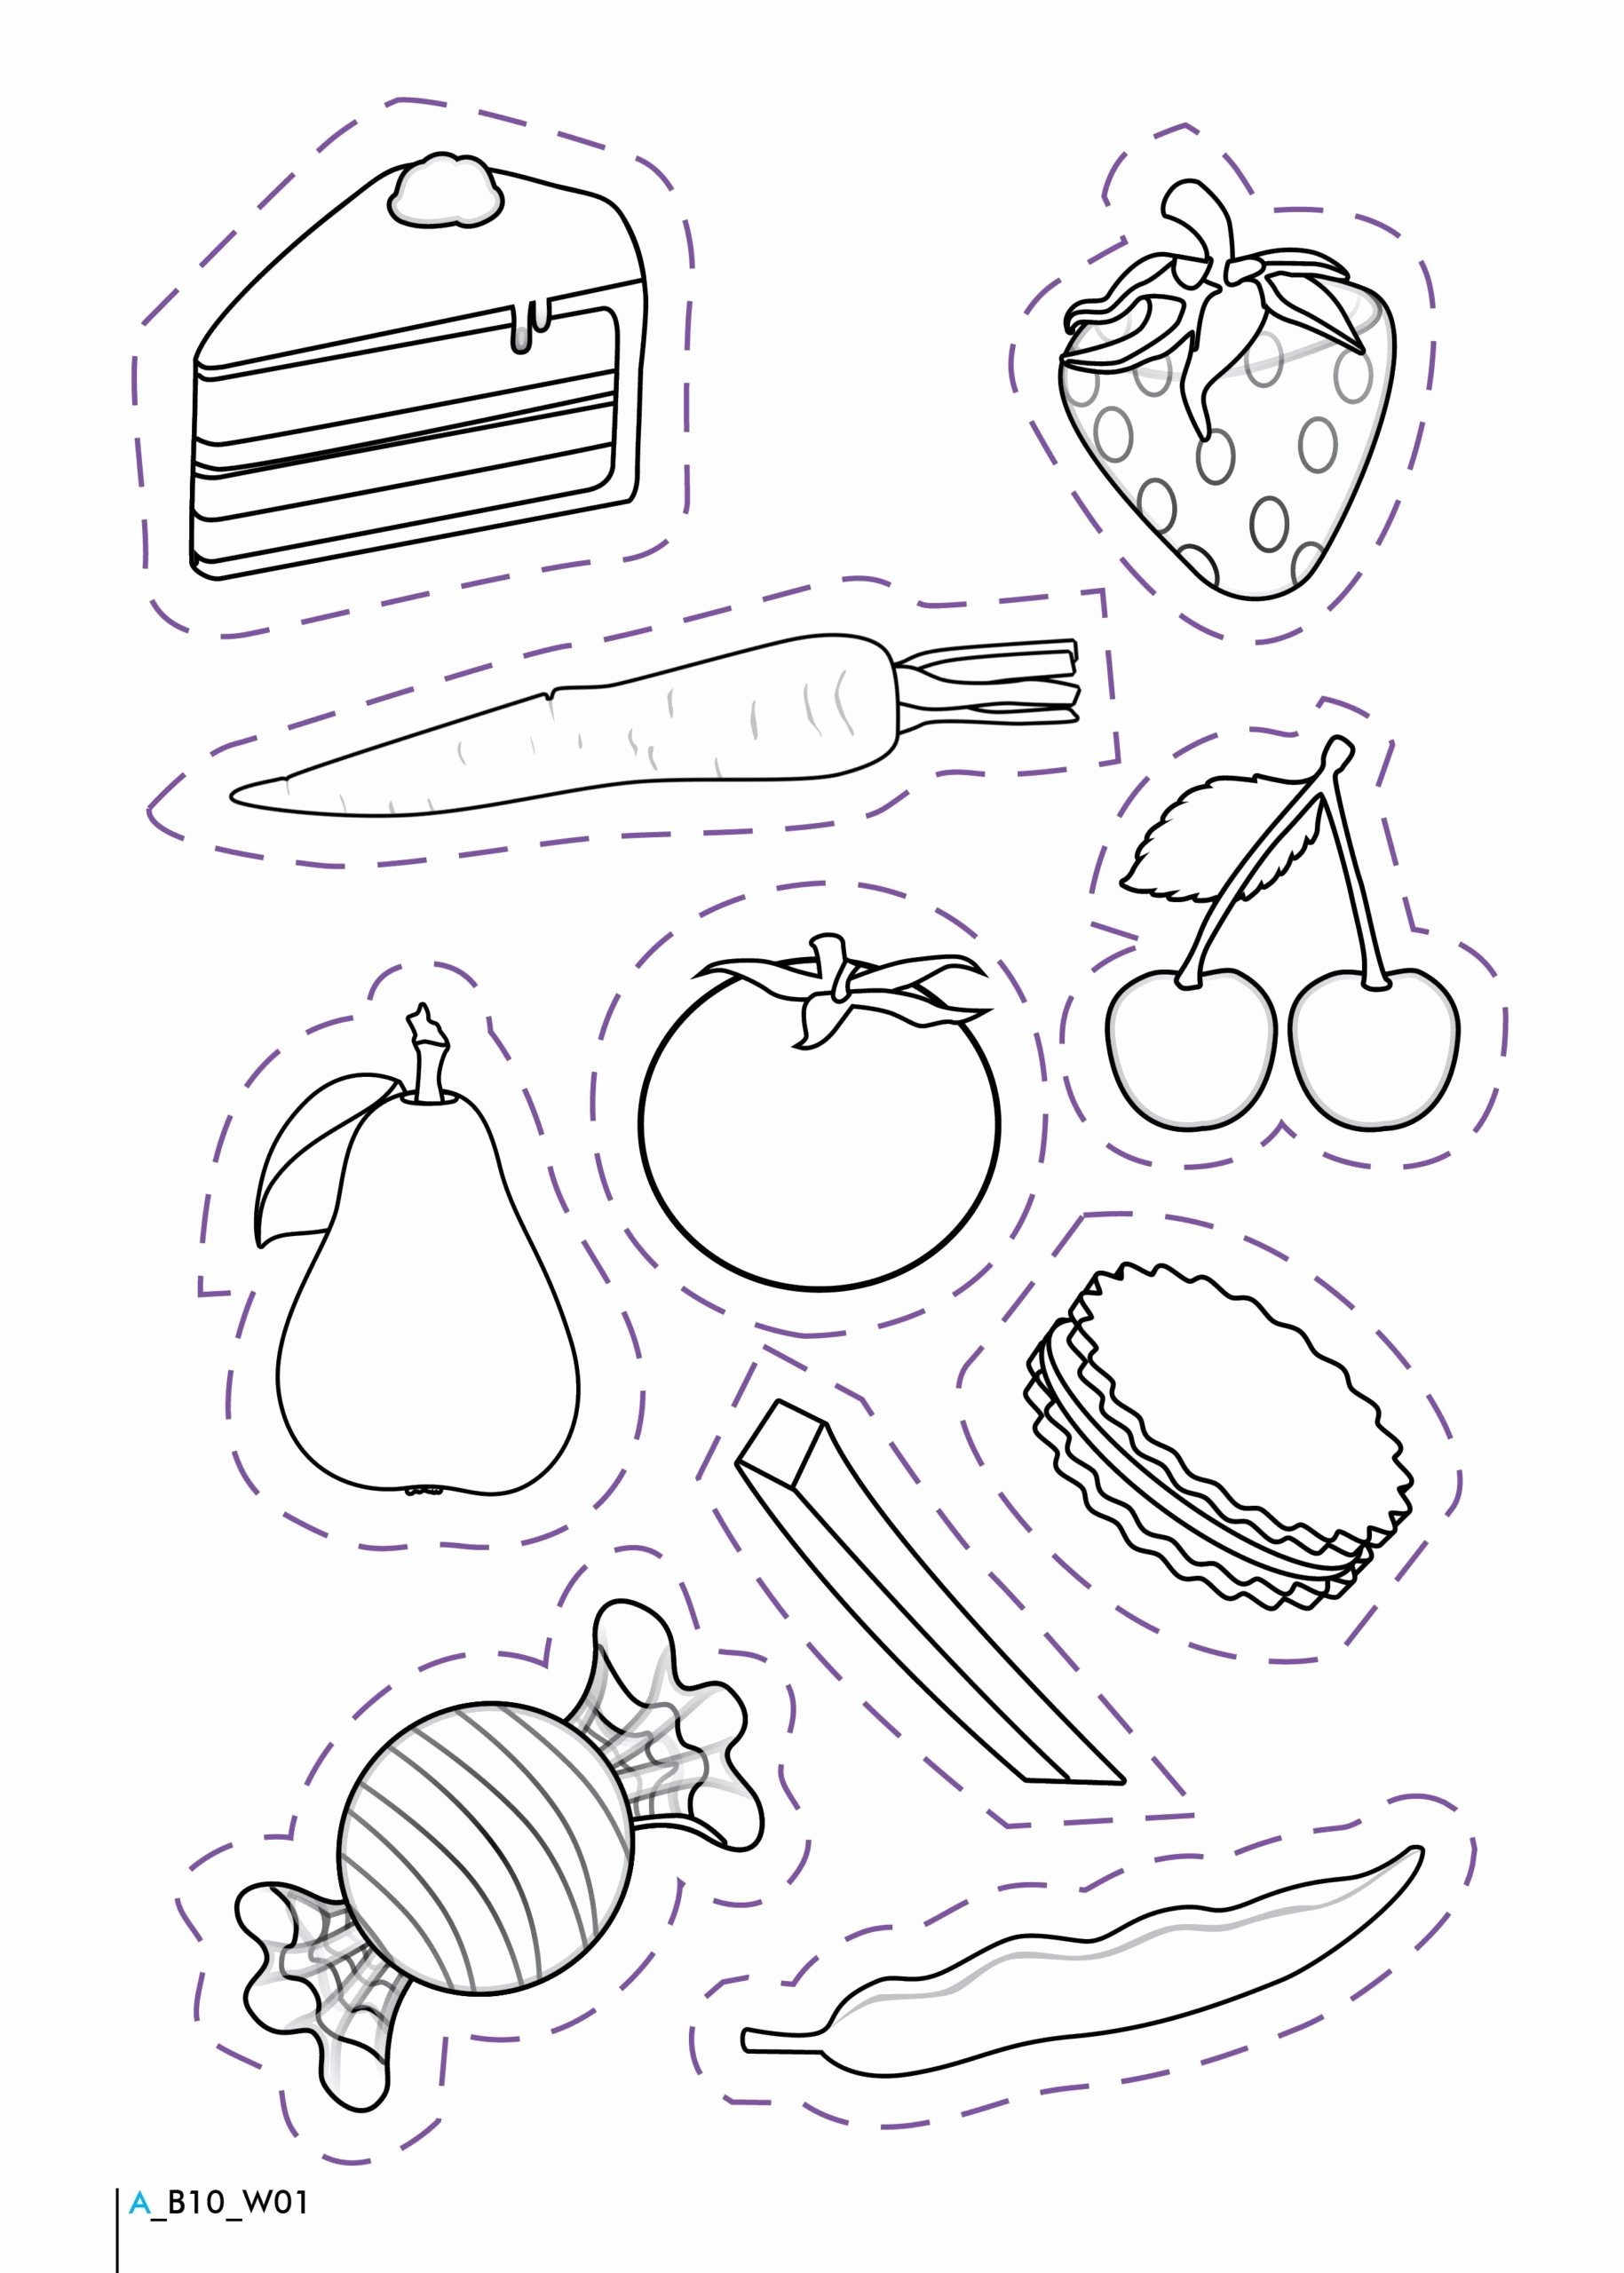 Nutrition Worksheets for Preschoolers Unique Image Result for Healthy and Unhealthy Food Worksheets Free